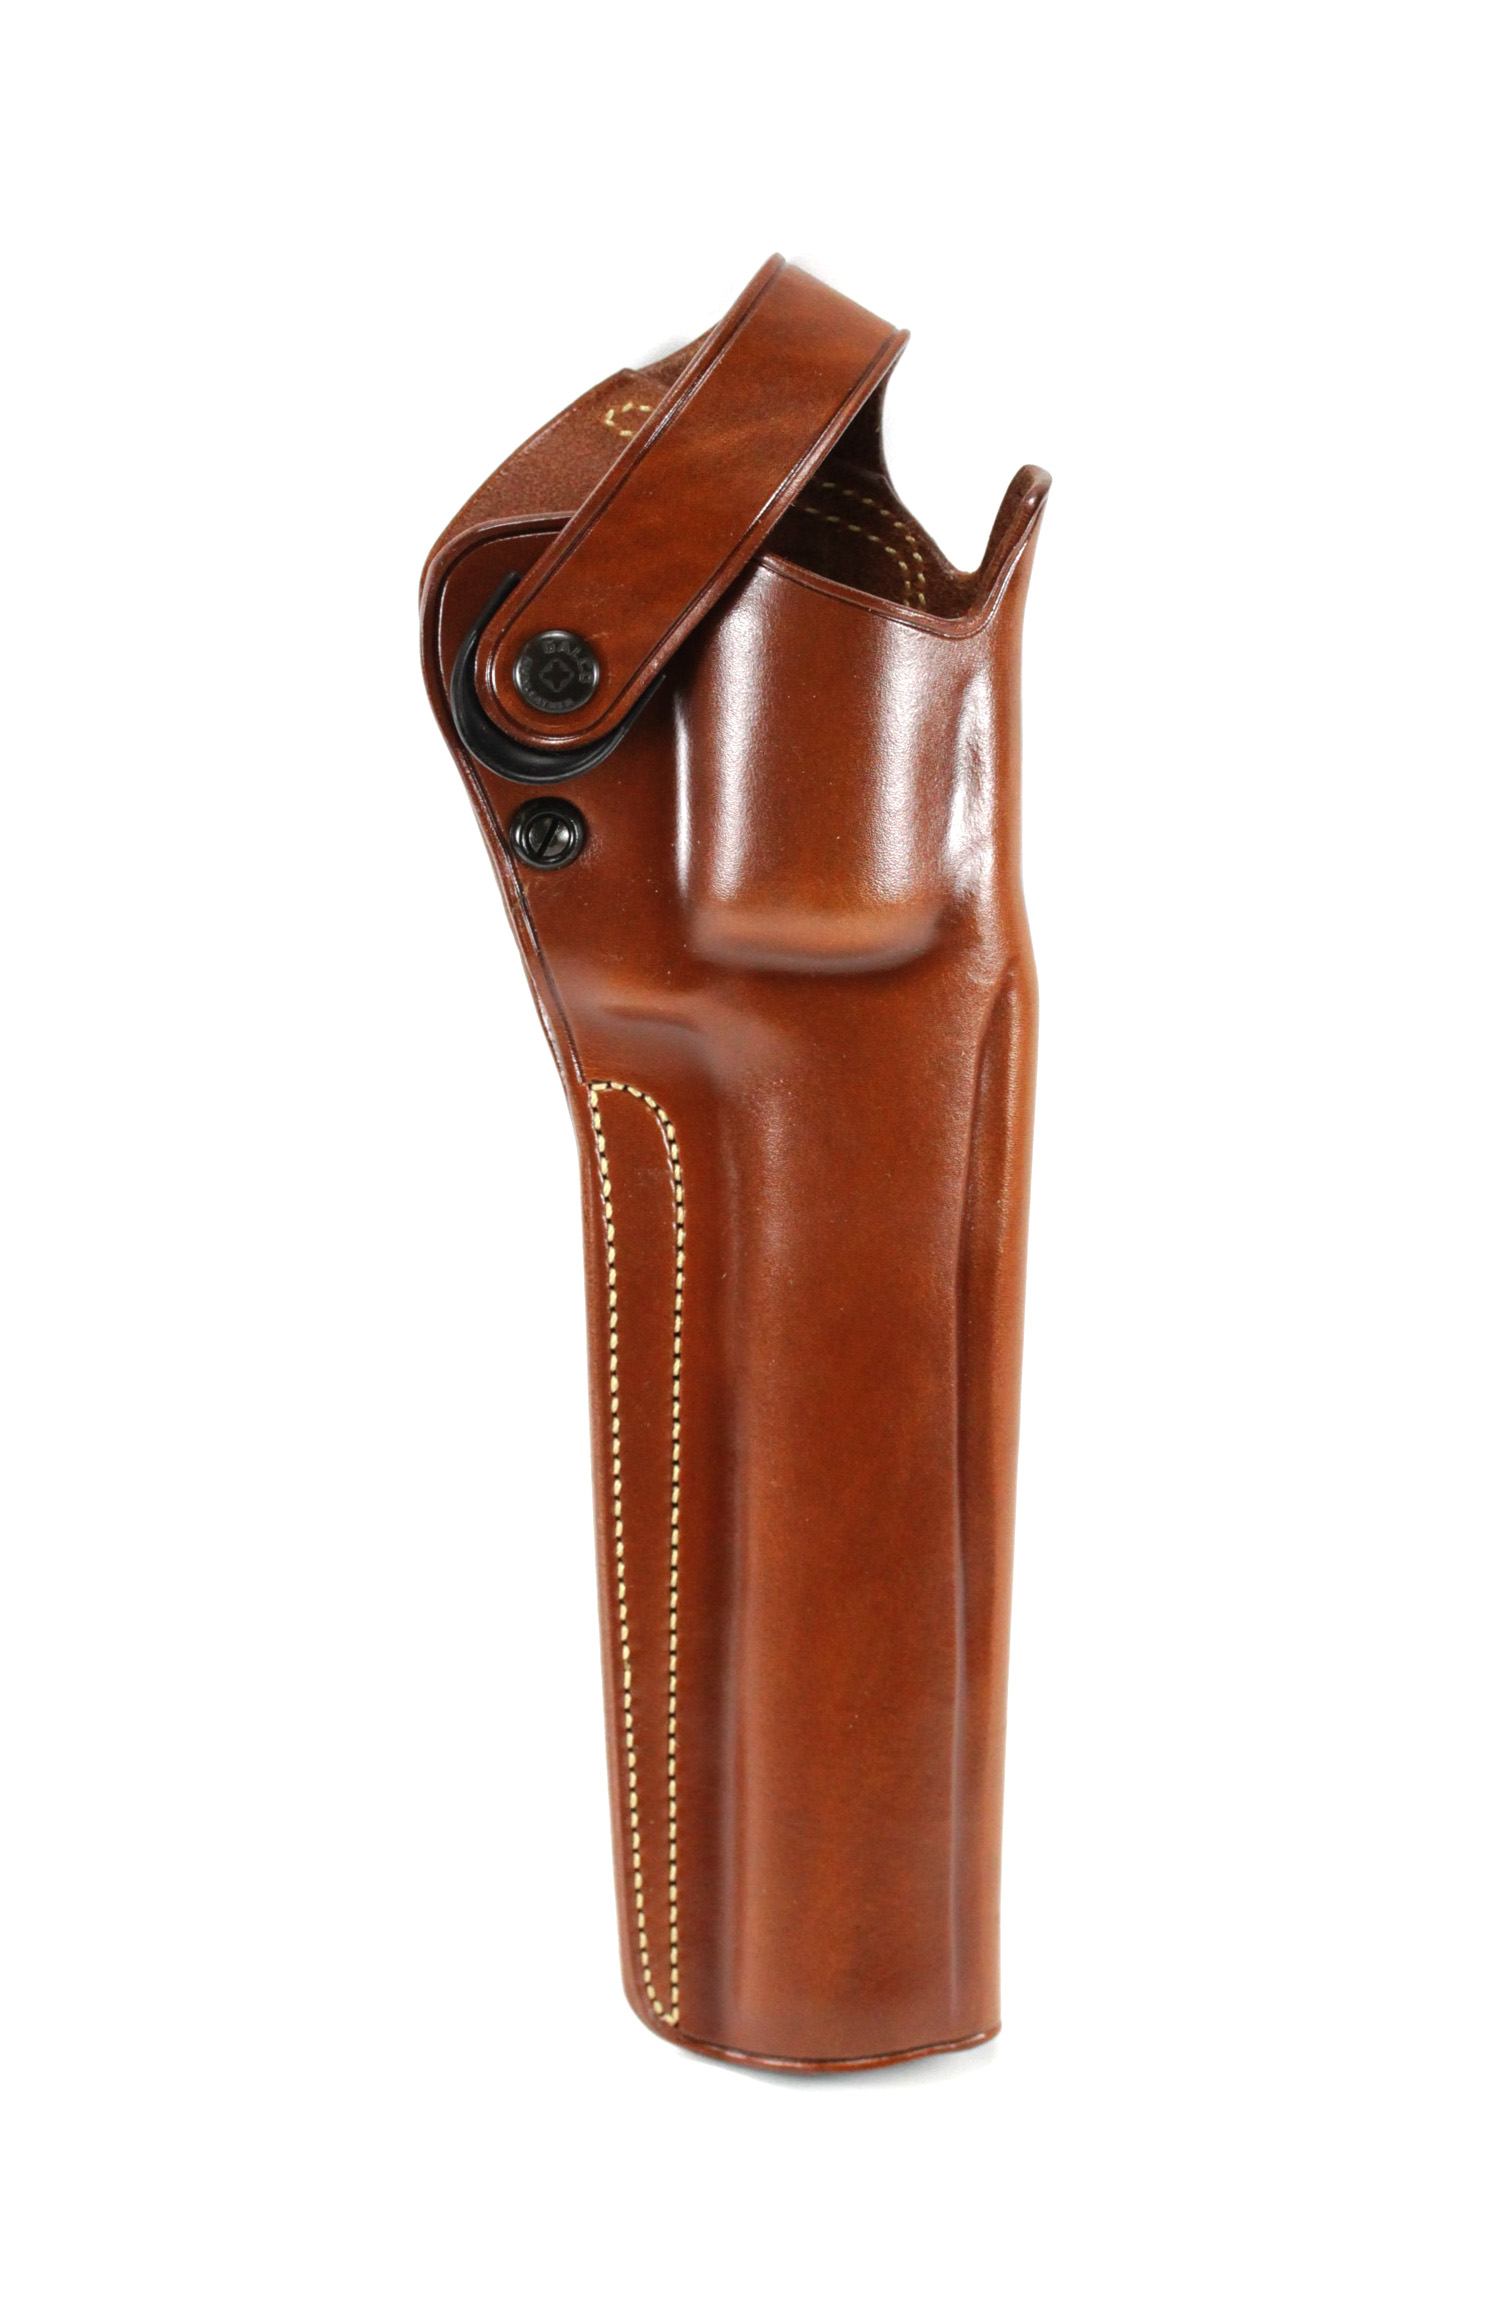 460 Best Baddie Outfits Images On Pinterest: Galco DAO172 Revolver Holster Fits Smith & Wesson 500 8.5